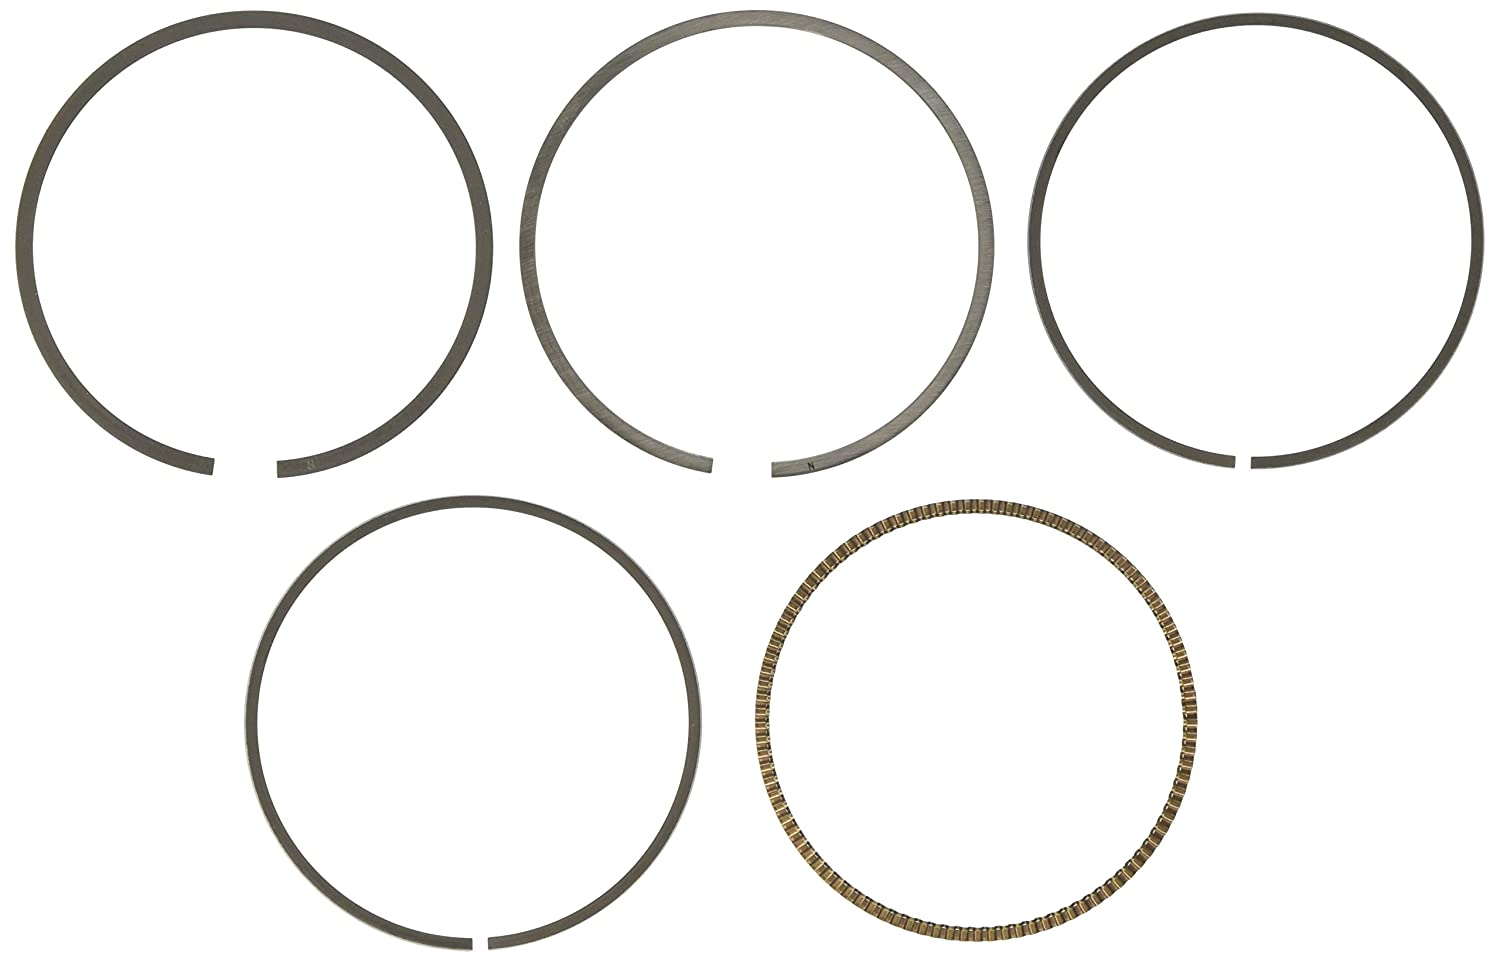 Wiseco 3150XG Ring Set for 80.00mm Cylinder Bore